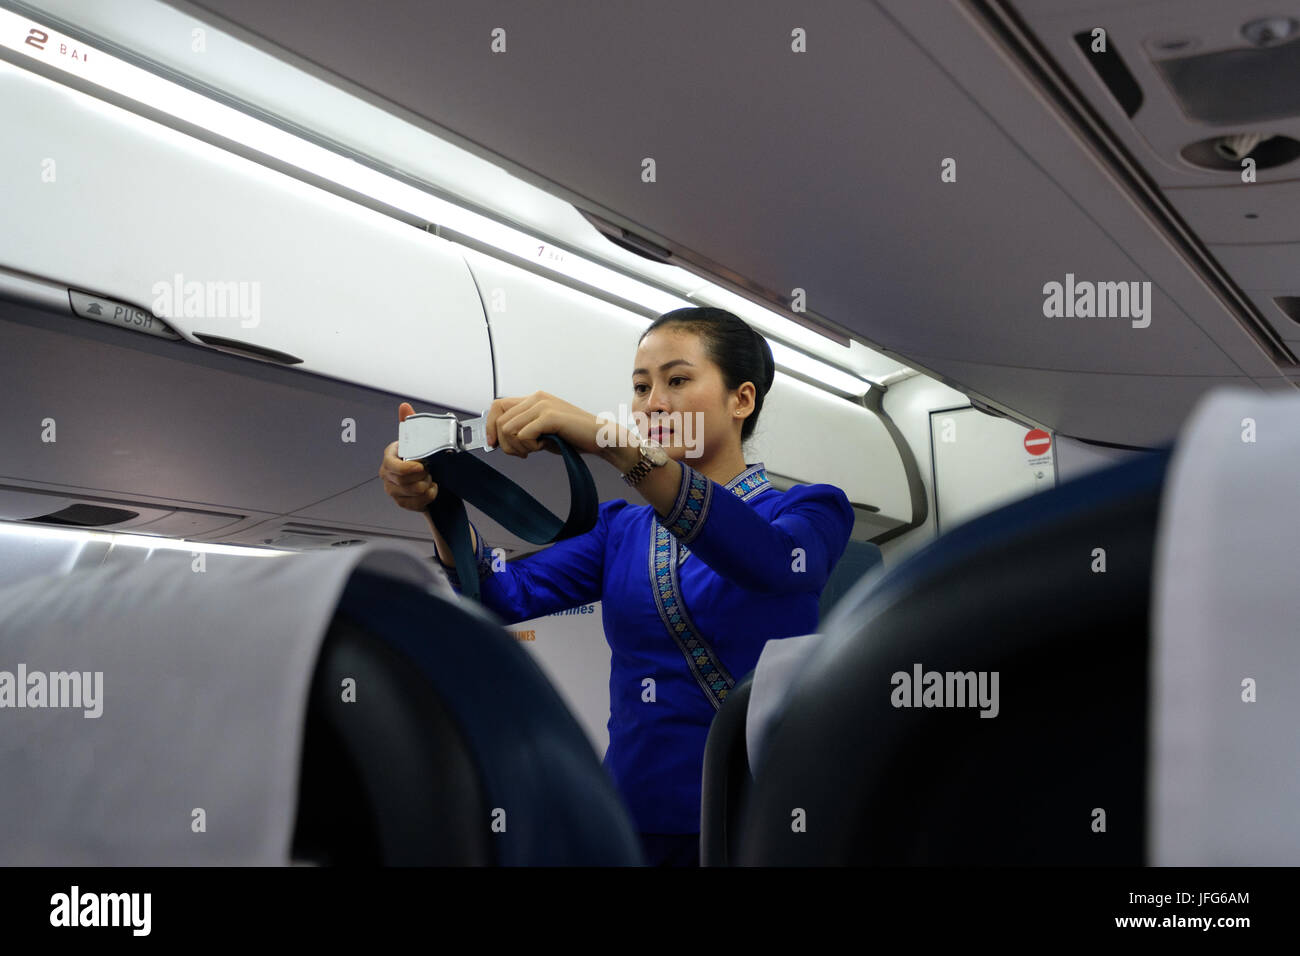 Flight hostess in uniform showing how to use the airplane seat belt during safety procedures - Stock Image